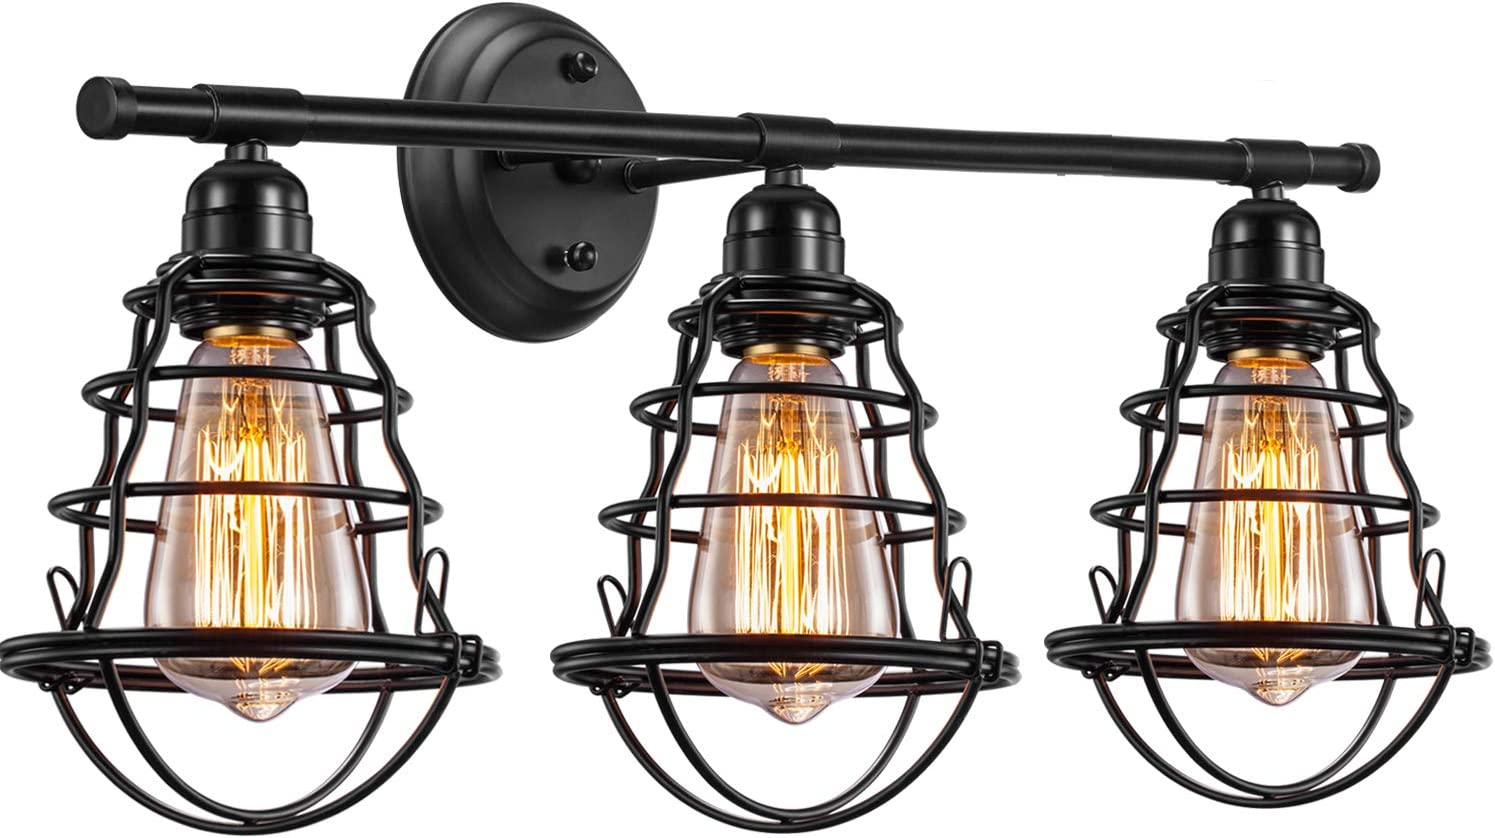 Edison 3 Light Bathroom Vintage Vanity Wall Sconce Lighting Industrial Metal Wire Cage Wall Light Rustic Farmhouse Style Wall Lamp Fixtures For Bathroom Living Room Kitchen Amazon Com